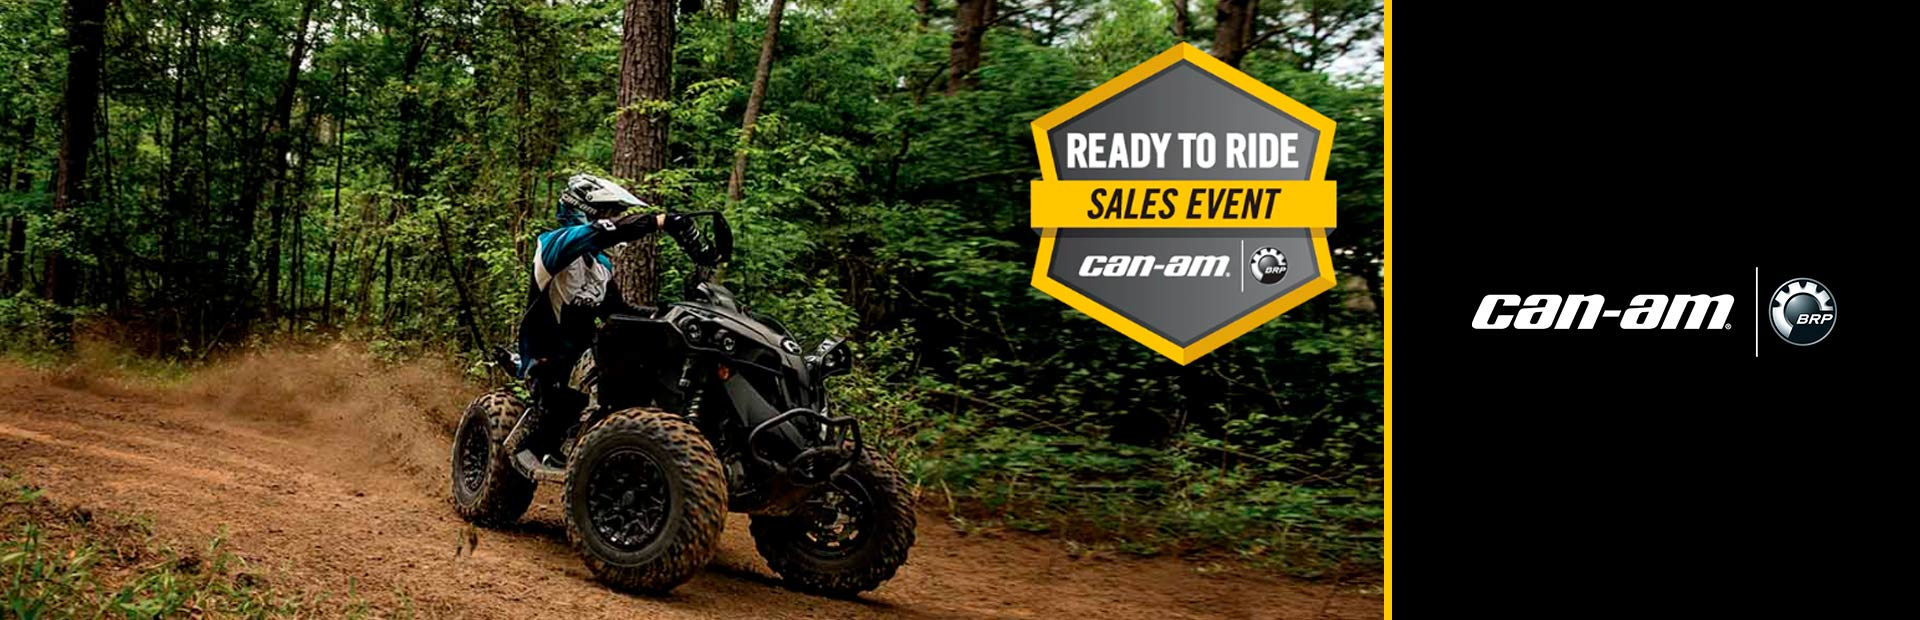 Can-Am: Ready yo Ride Sales Event - Renegade